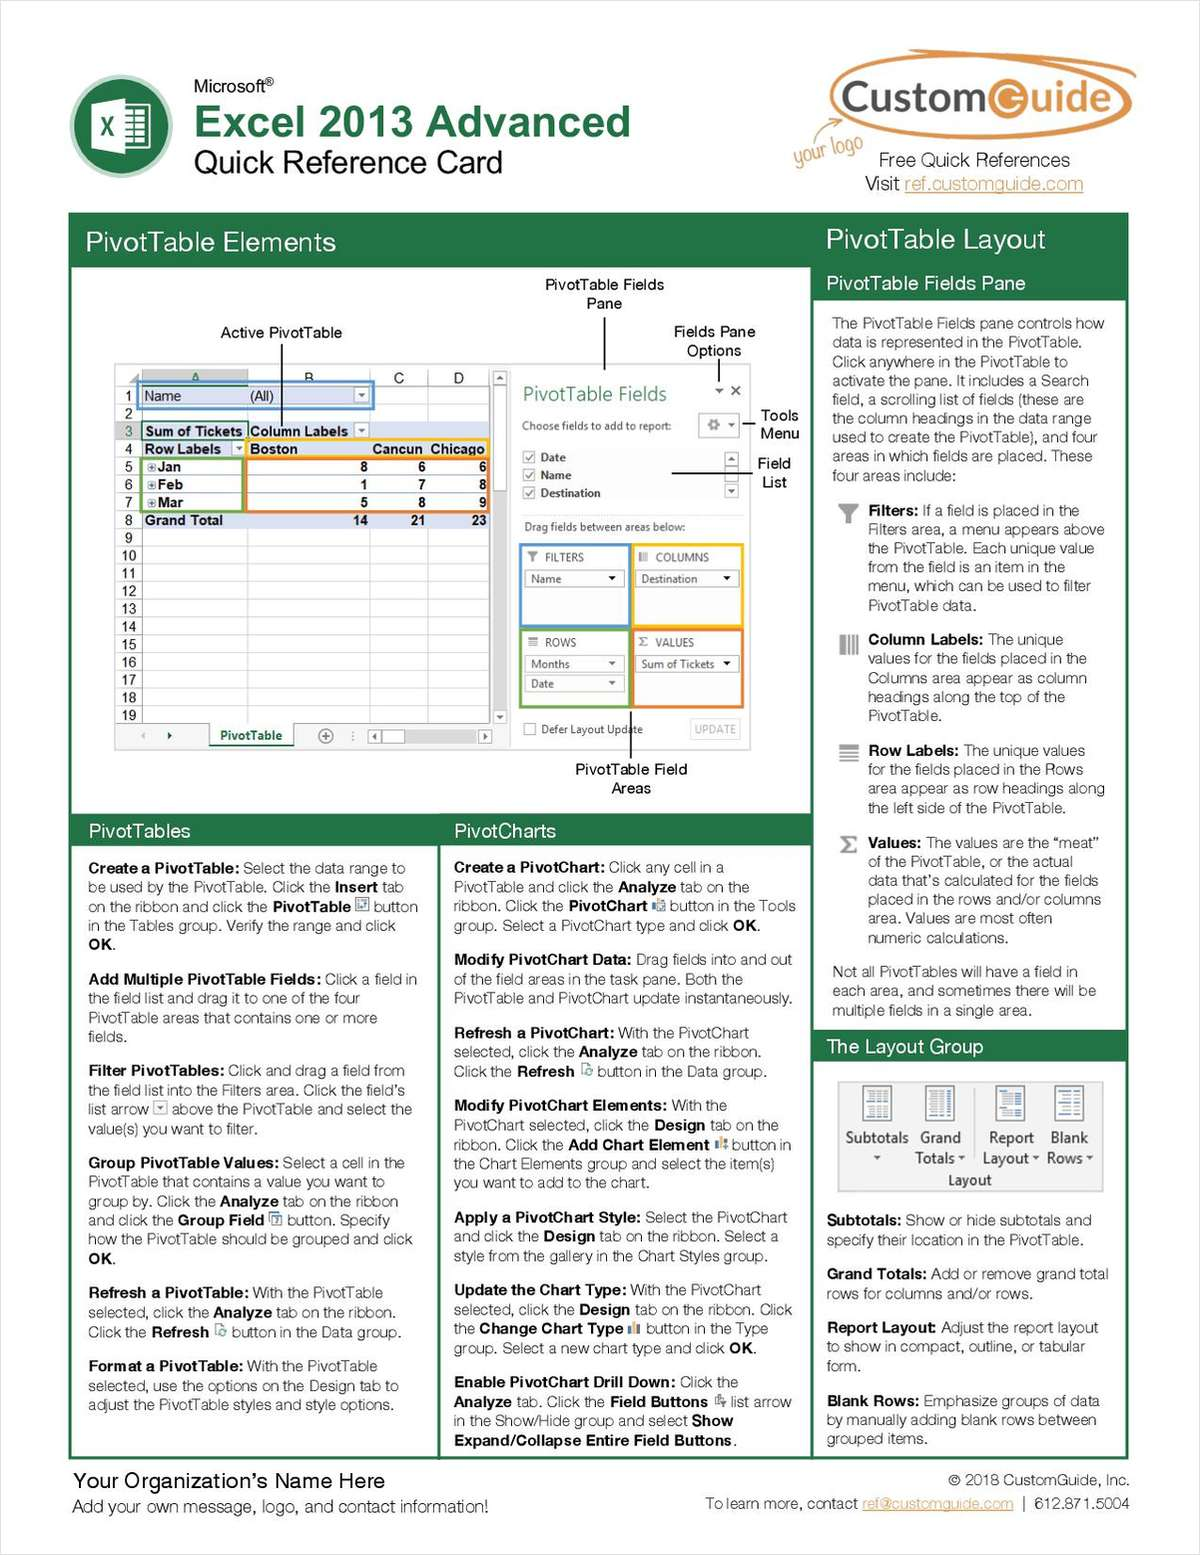 Microsoft Excel 2013 Advanced - Quick Reference Guide